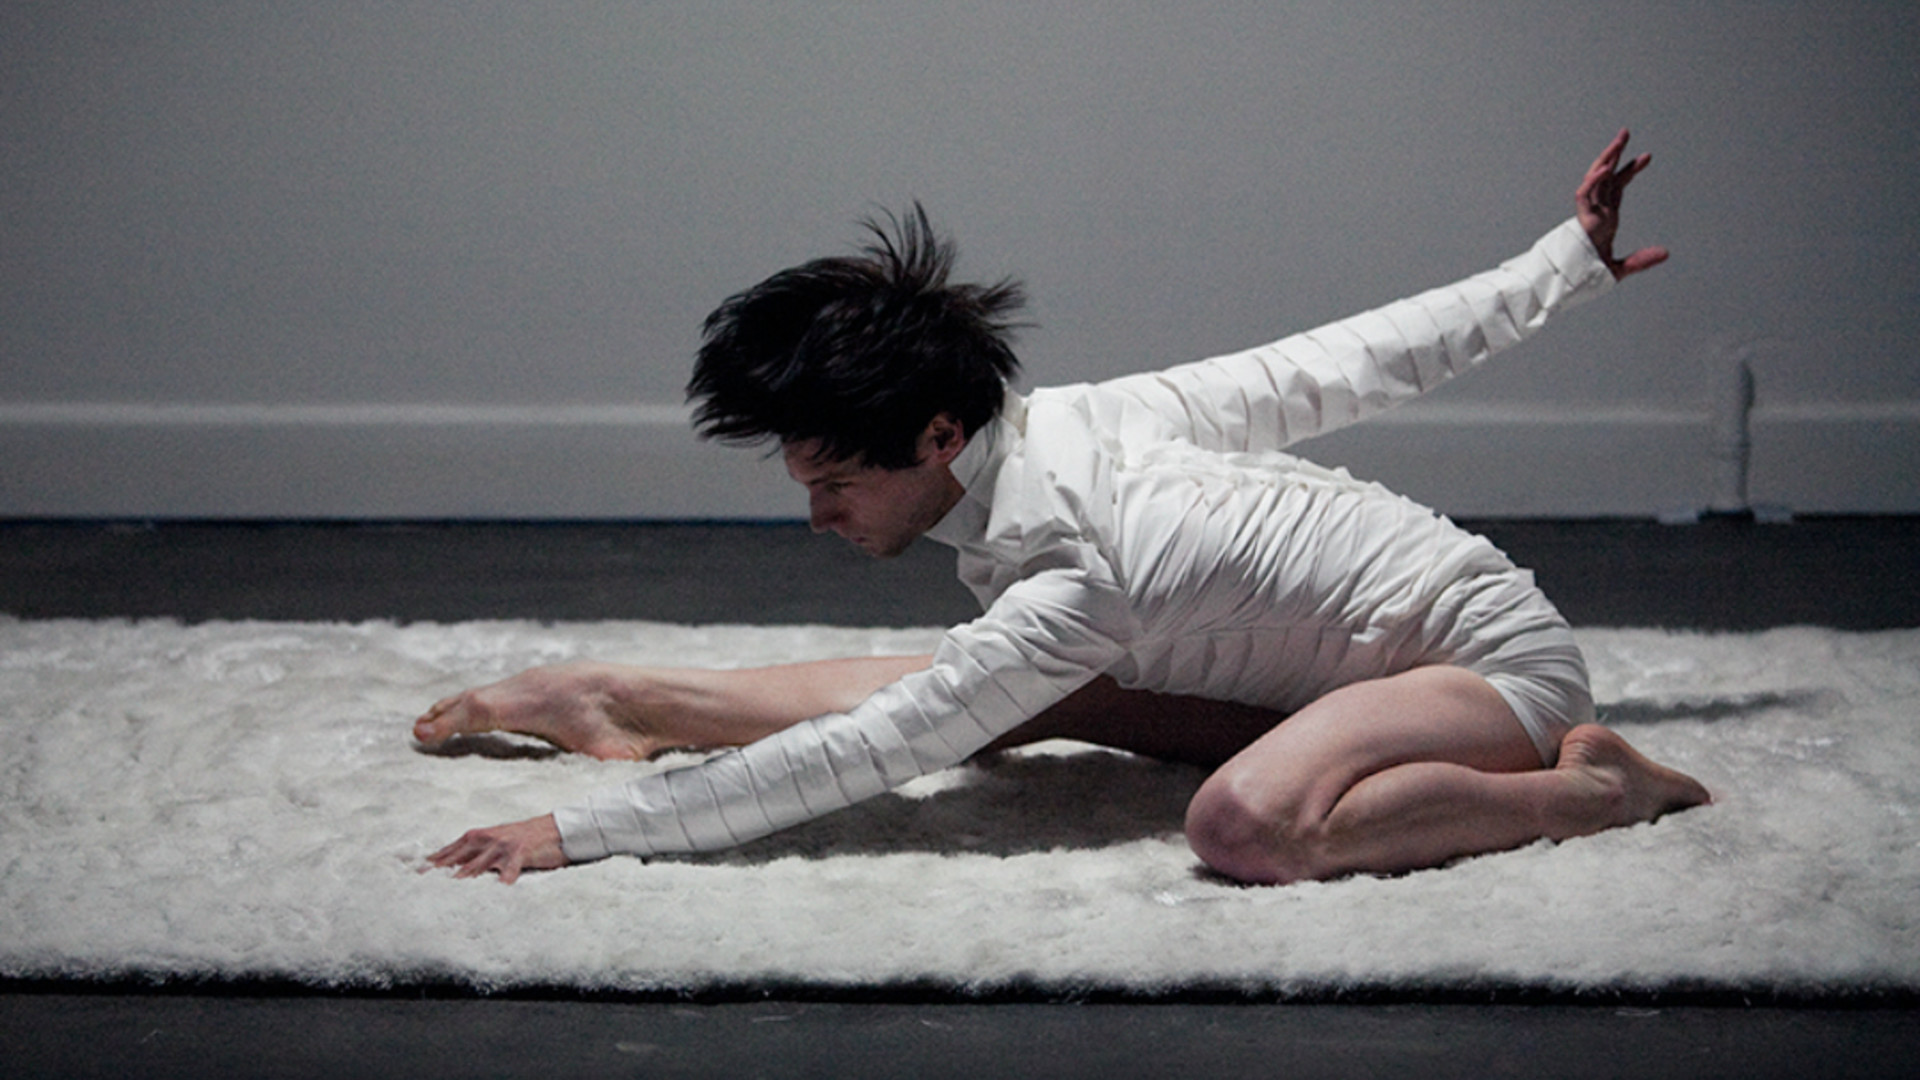 A male dancer dressed in white drops down onto a white rug dynamically with an intense focus forward